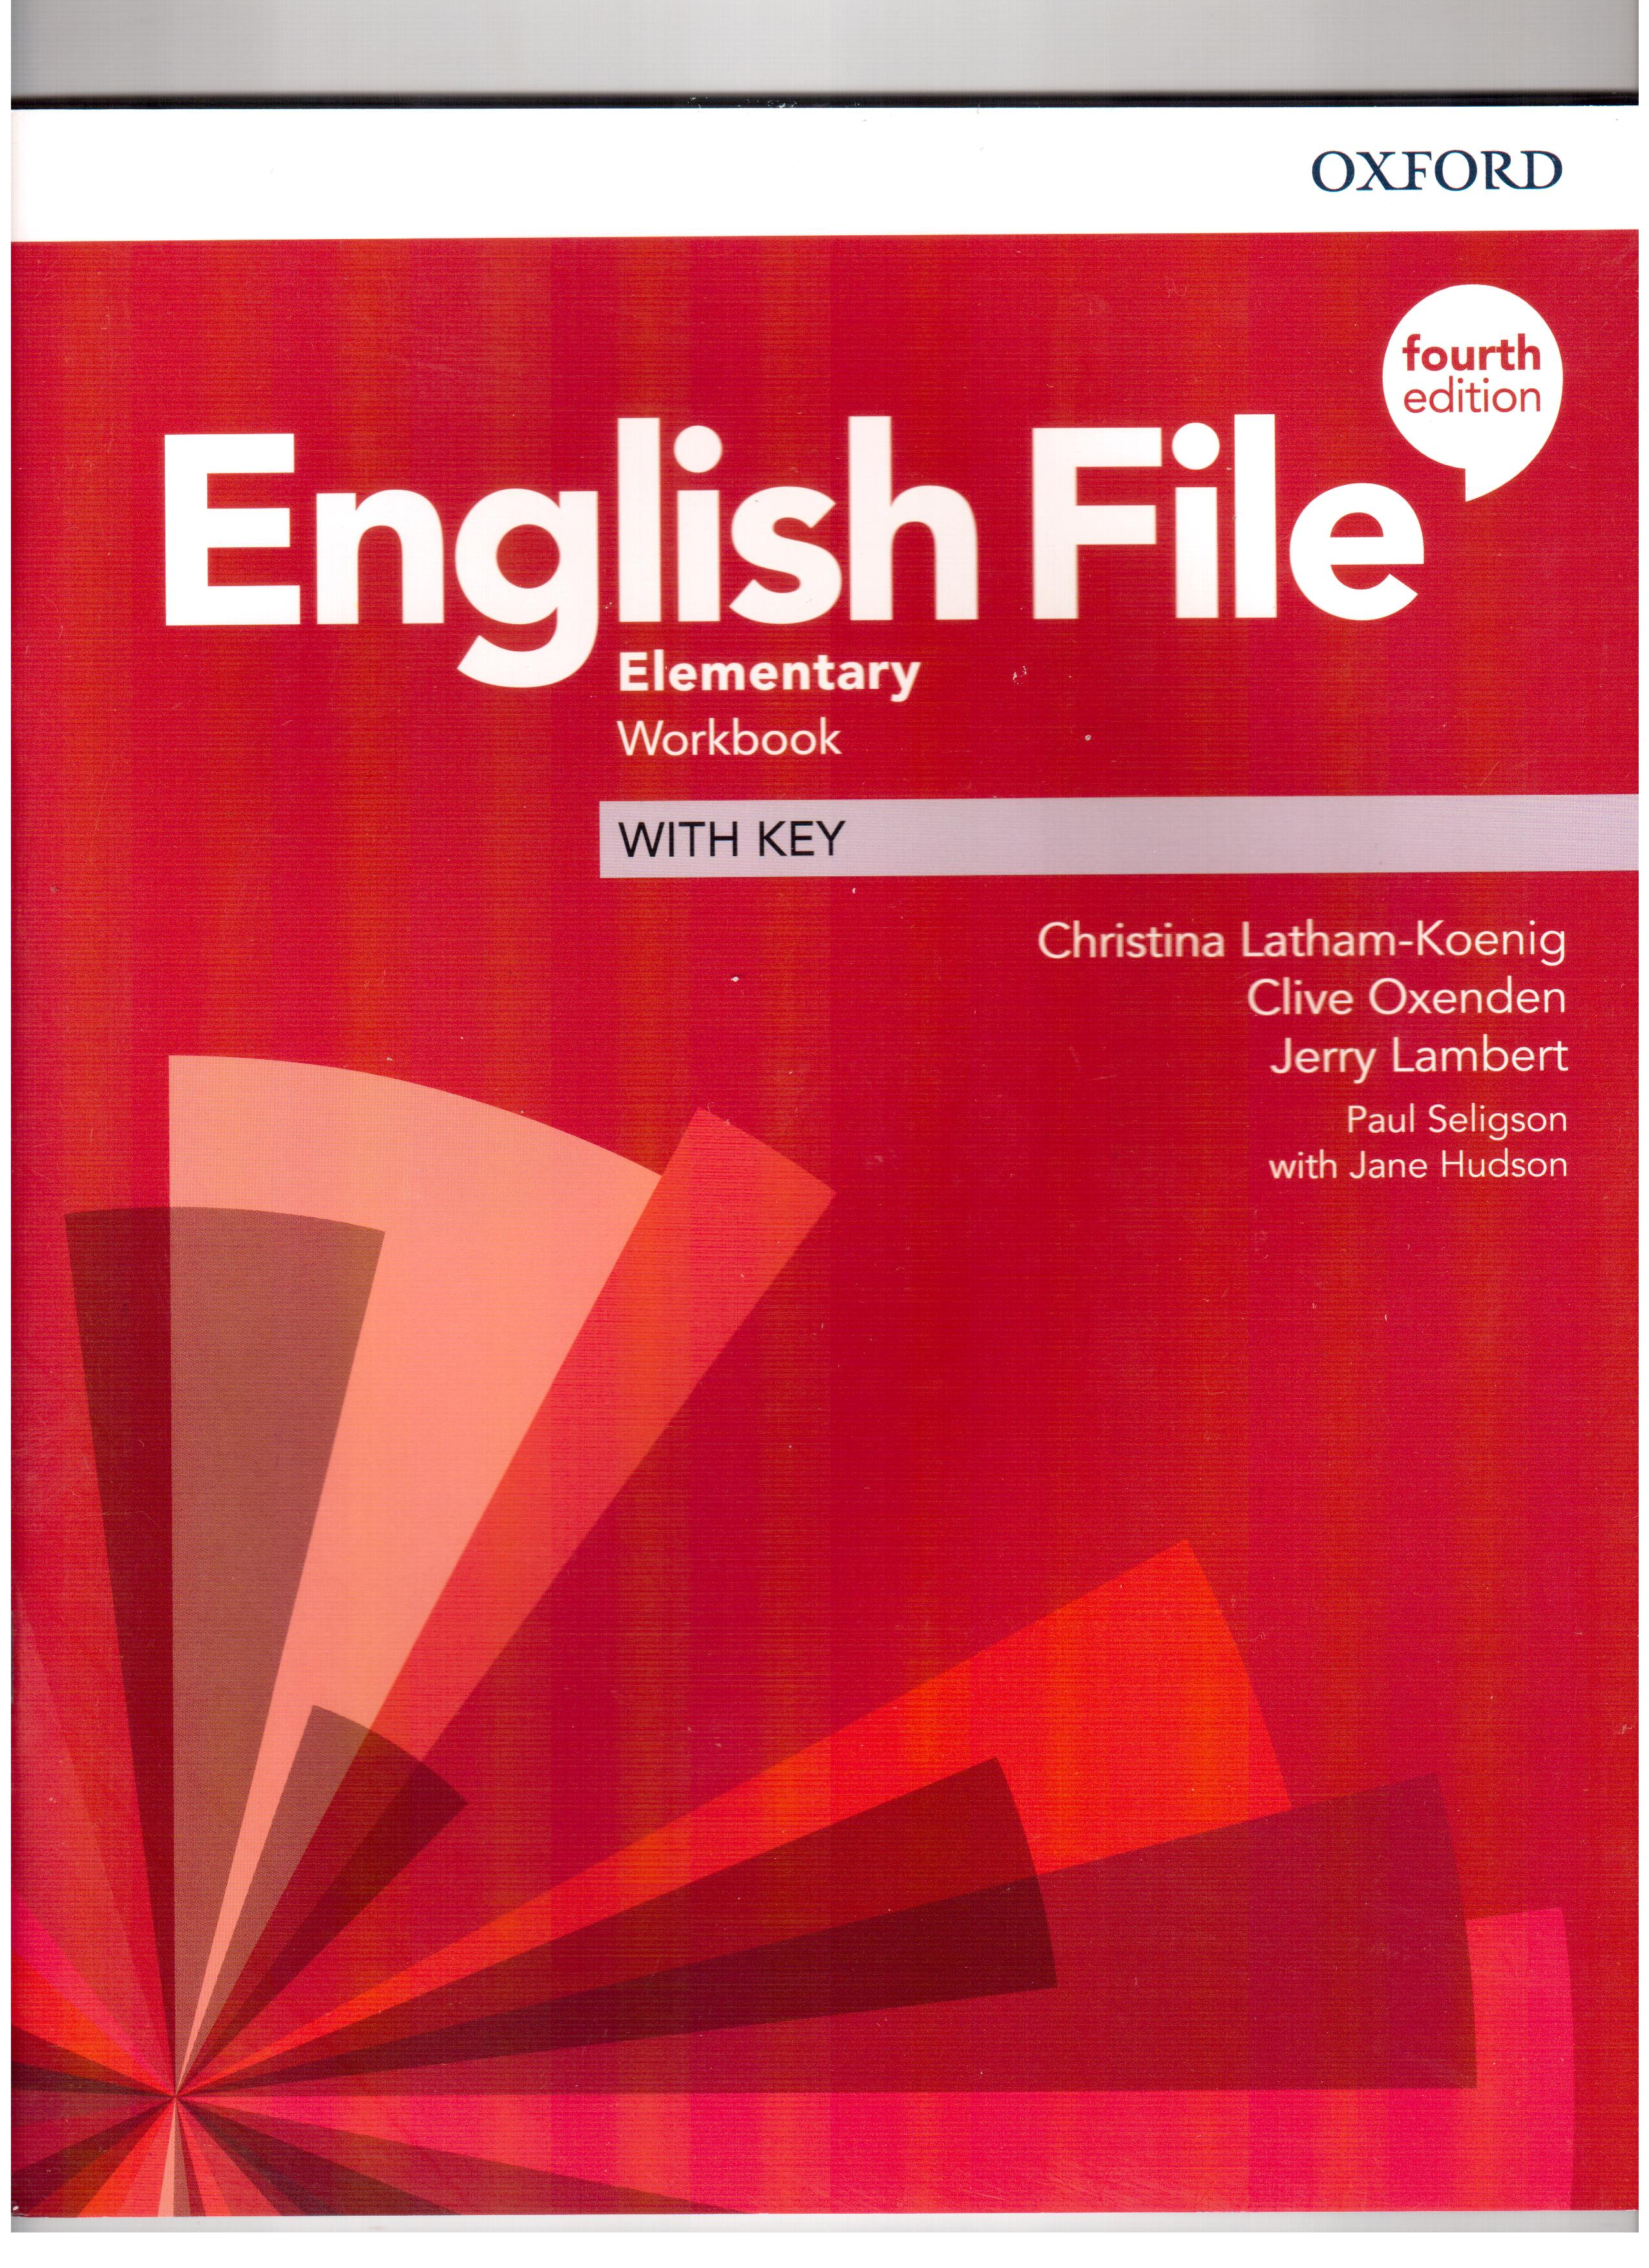 English File 4th Edition Elementary Workbook with key